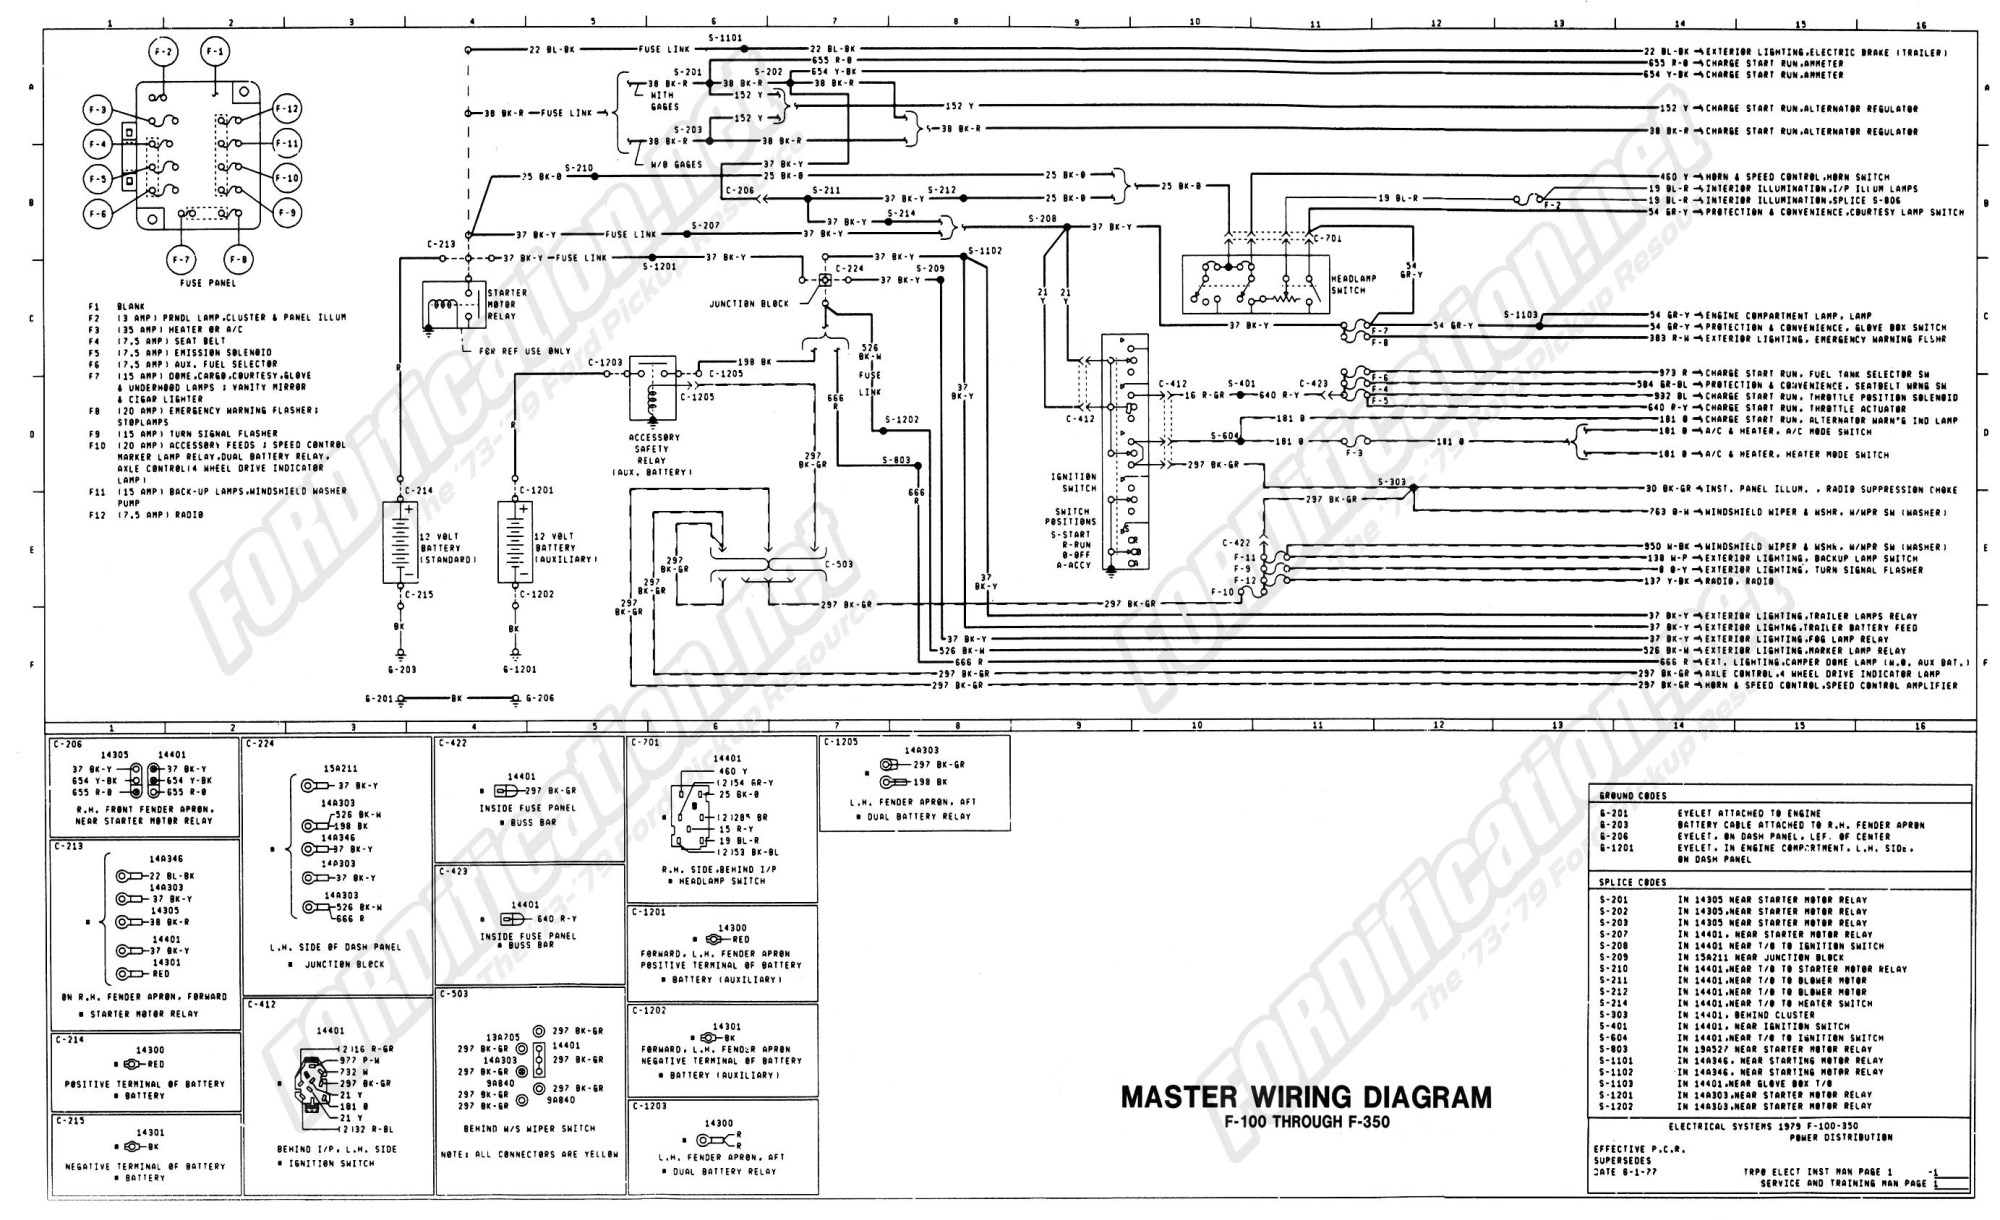 hight resolution of 1986 ford f150 engine diagram 79 f150 solenoid wiring diagram ford truck enthusiasts forums of 1986